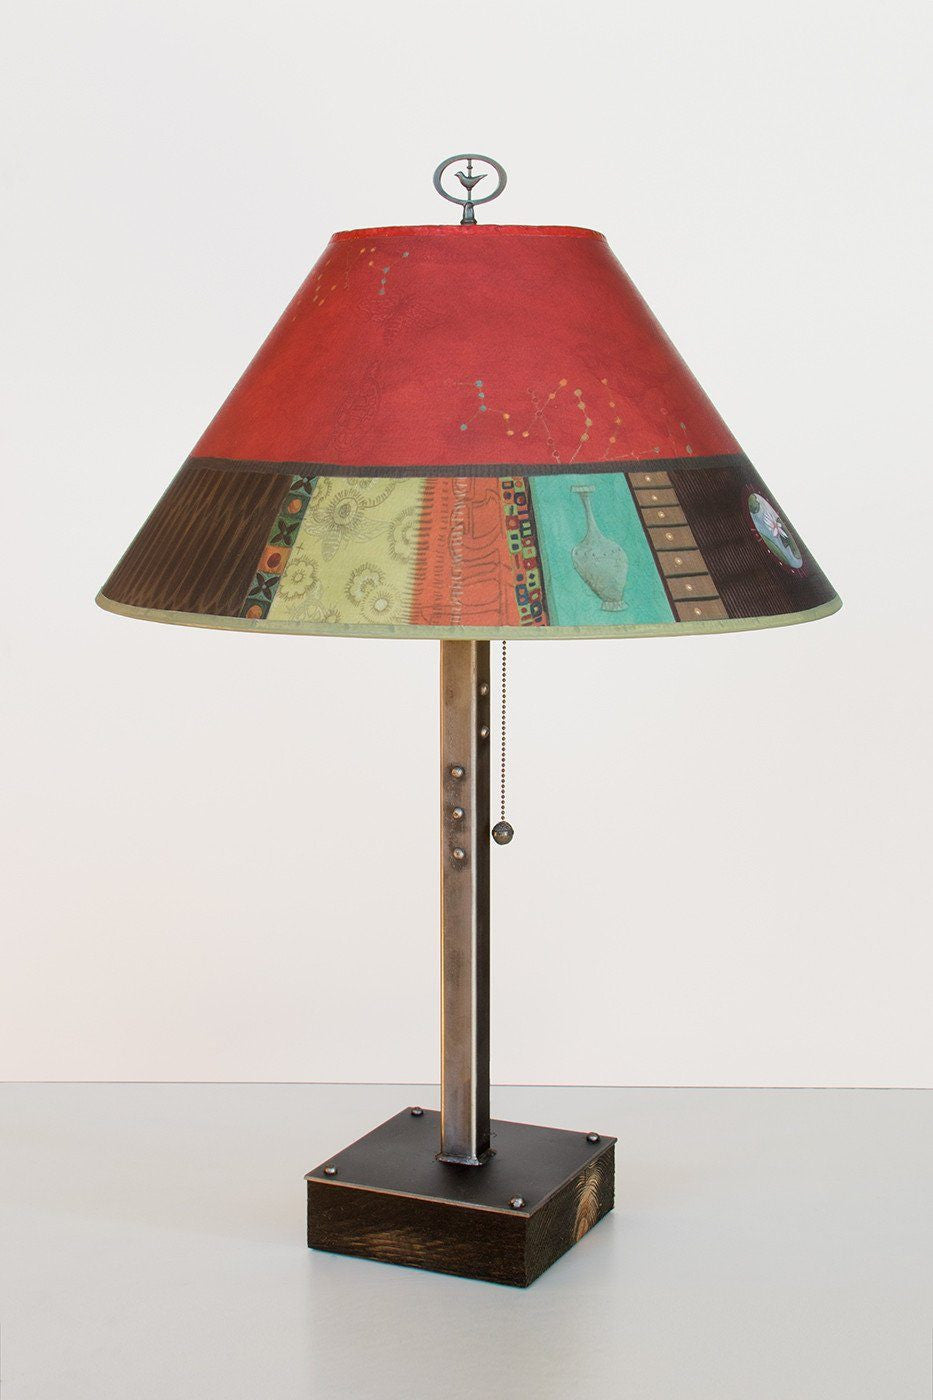 Steel Table Lamp on Wood with Large Conical Shade in Red Match